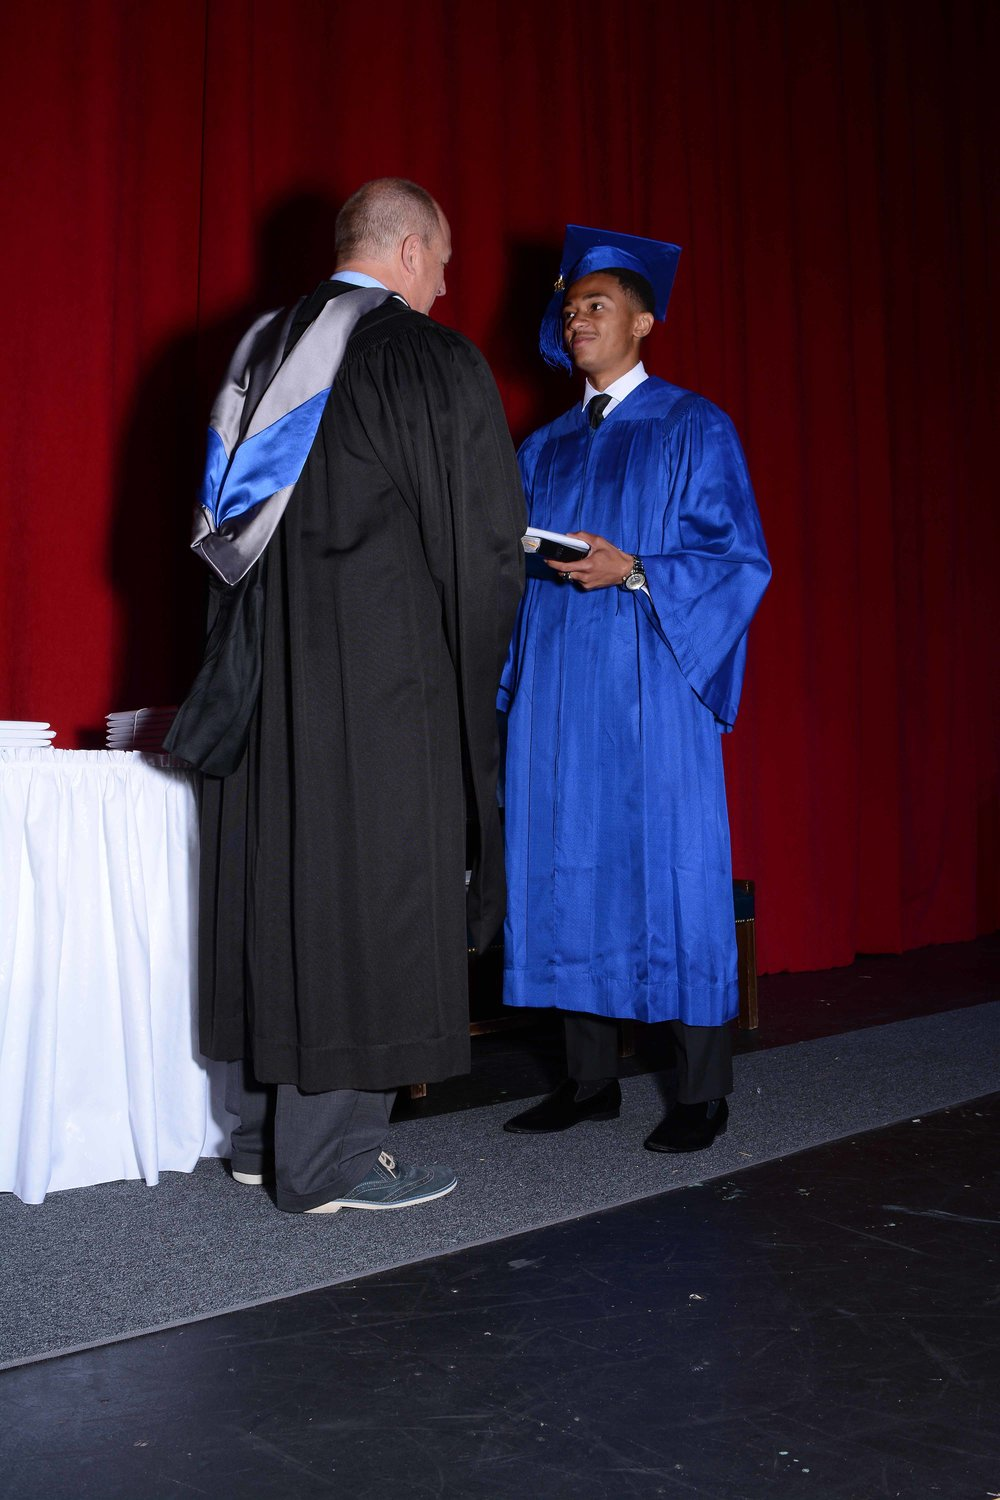 May14 Commencement159.jpg